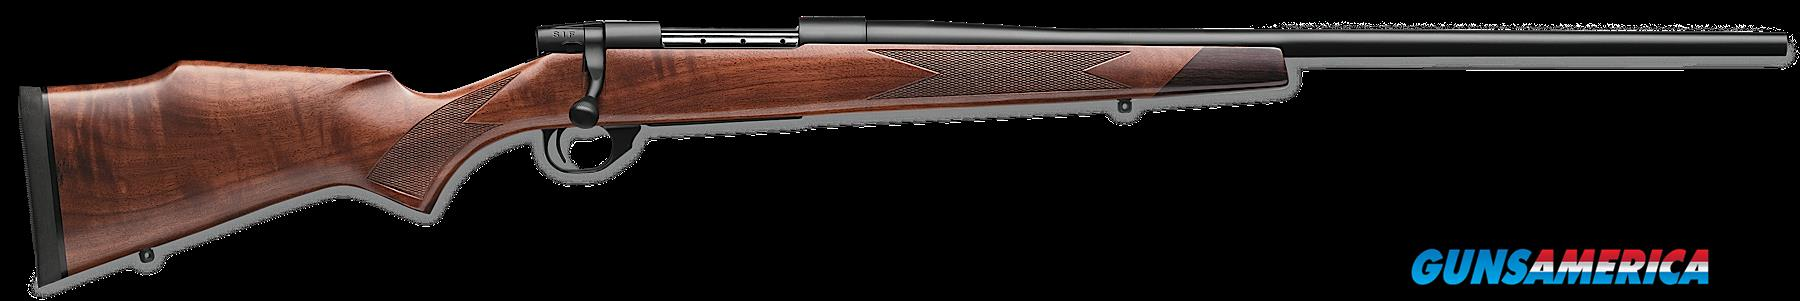 "Weatherby VDT223RR4O Vanguard Series 2 Sporter Bolt 223 Remington 24"" 5+1 Walnut Stk Blued  Guns > Rifles > Weatherby Rifles > Sporting"